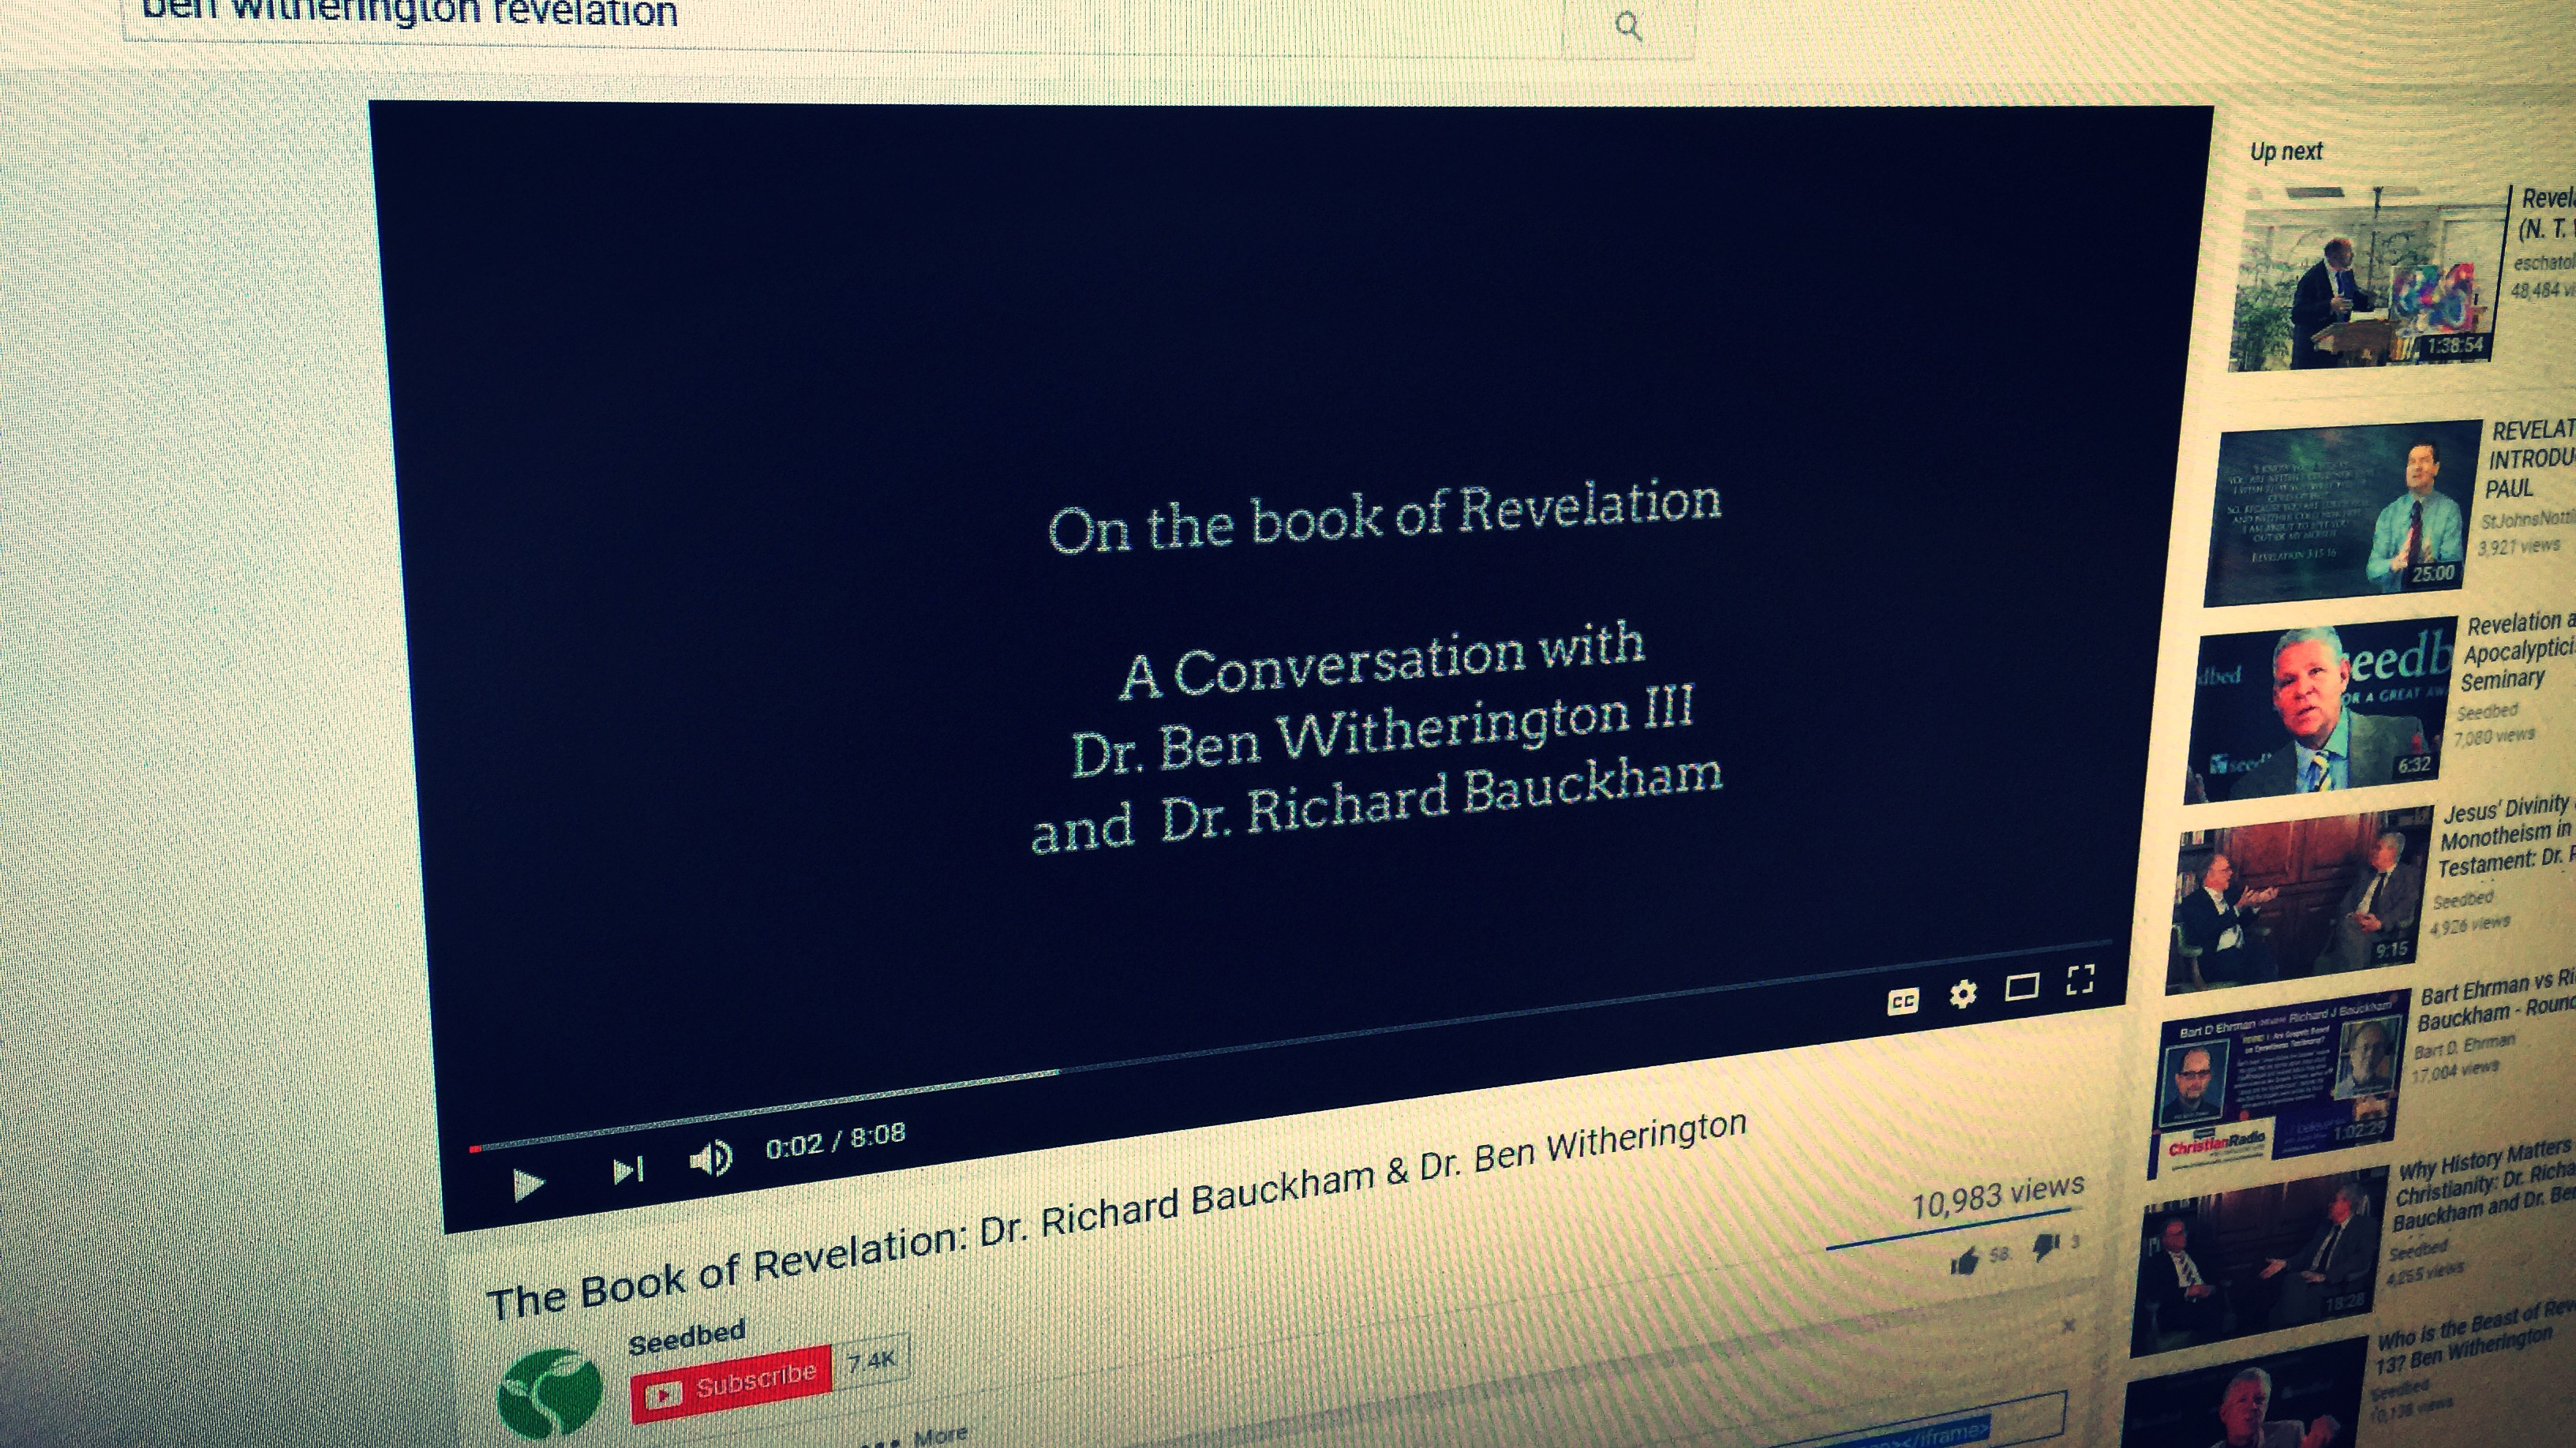 Ben Witherington on YouTube